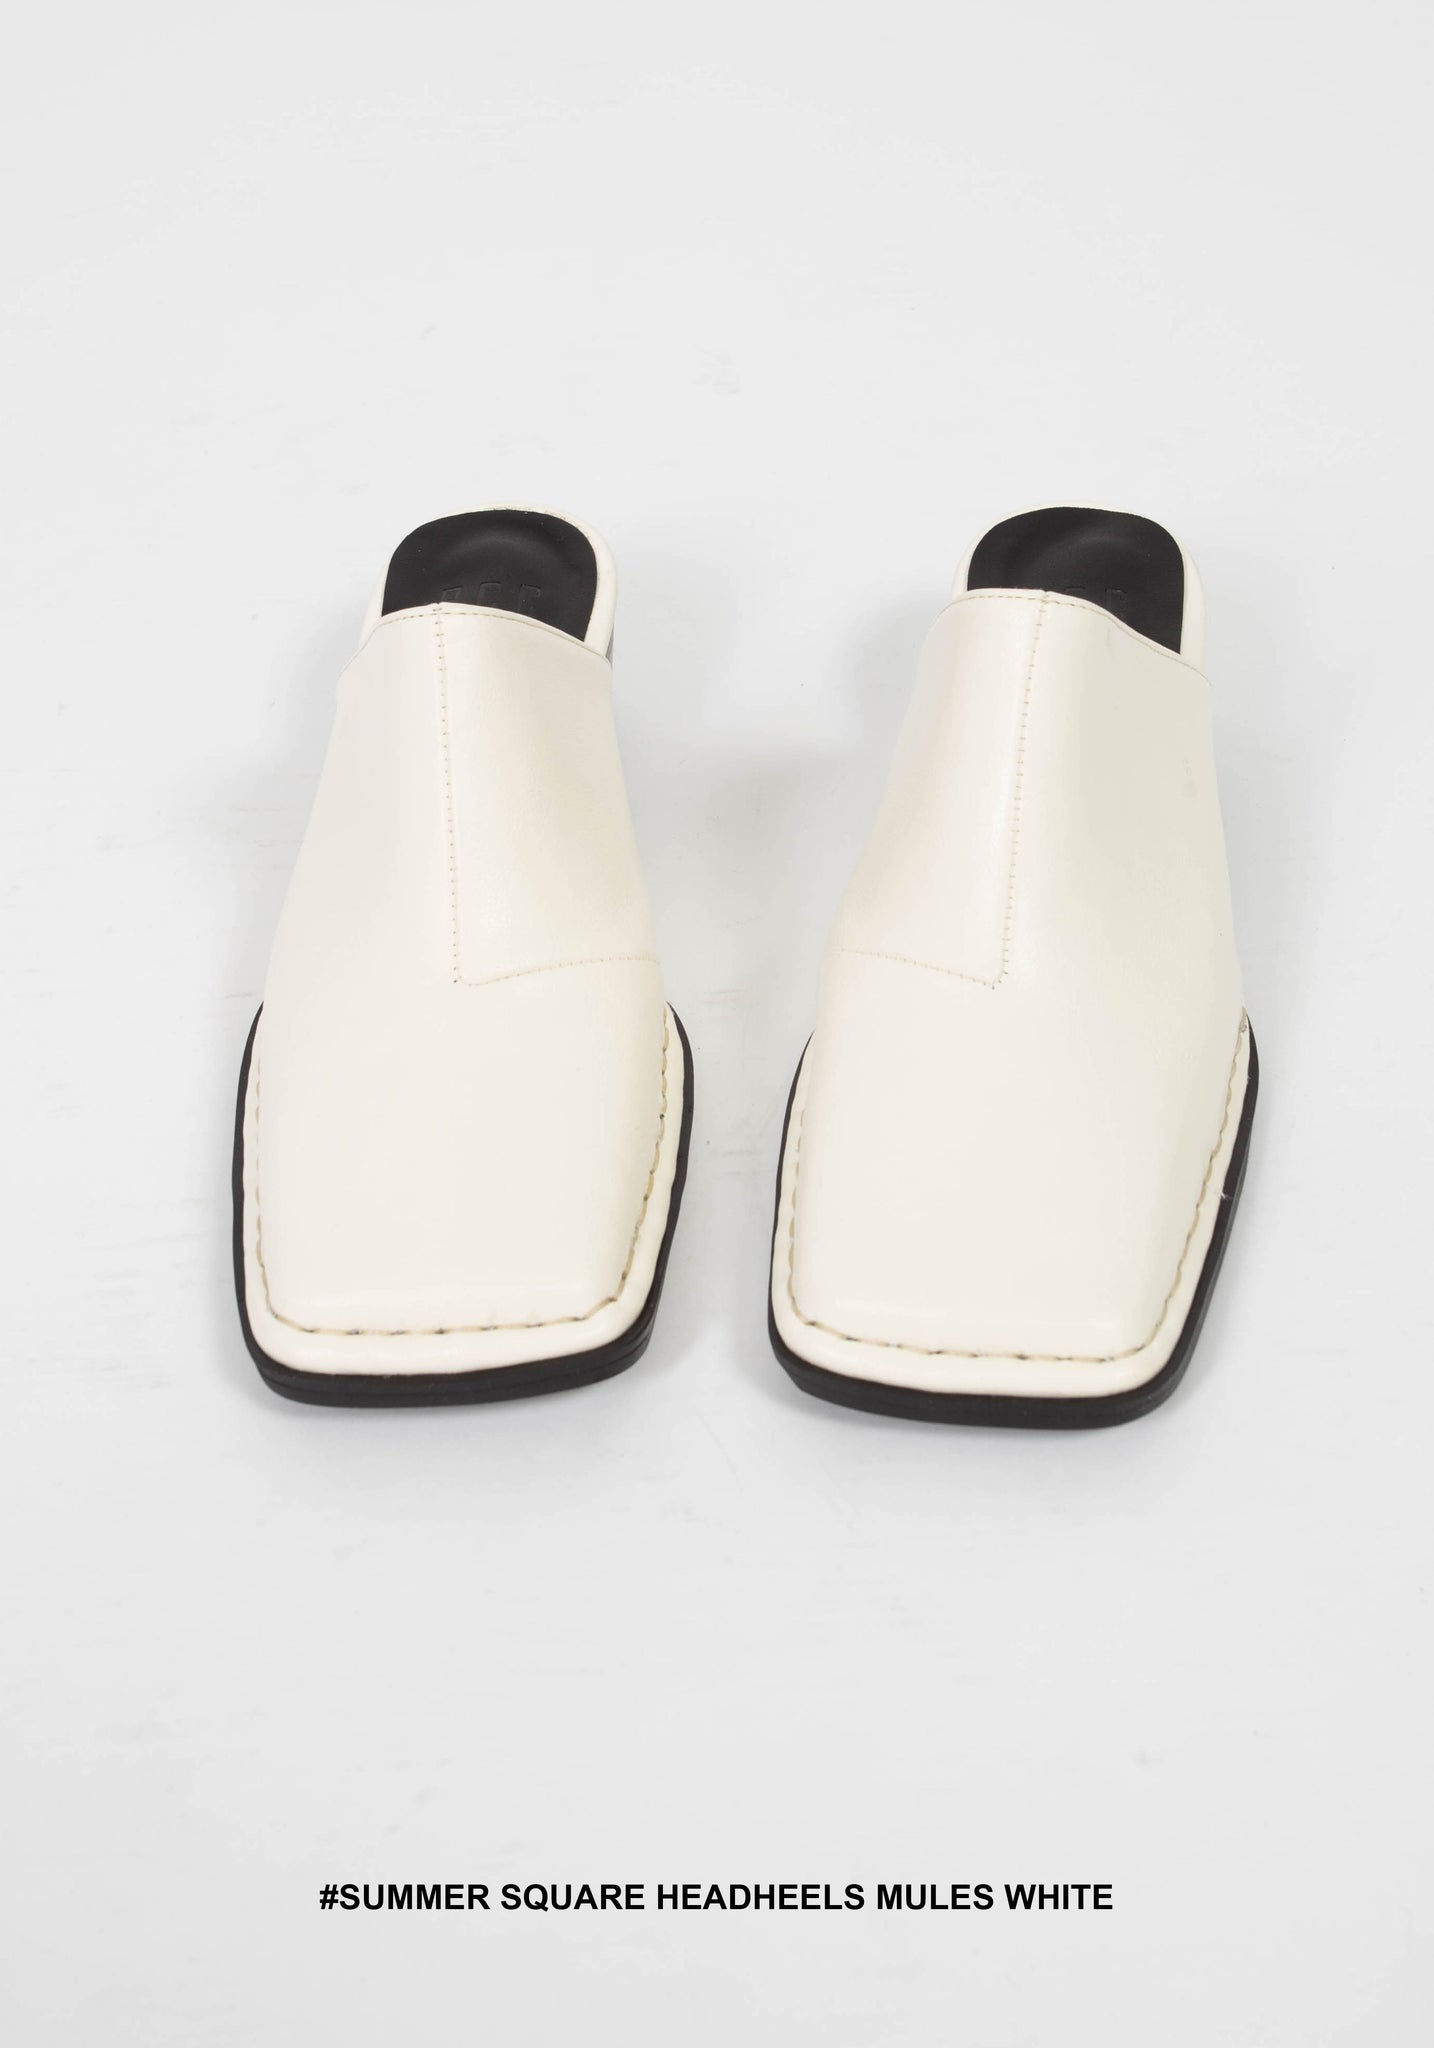 Summer Square Headheels Mules White